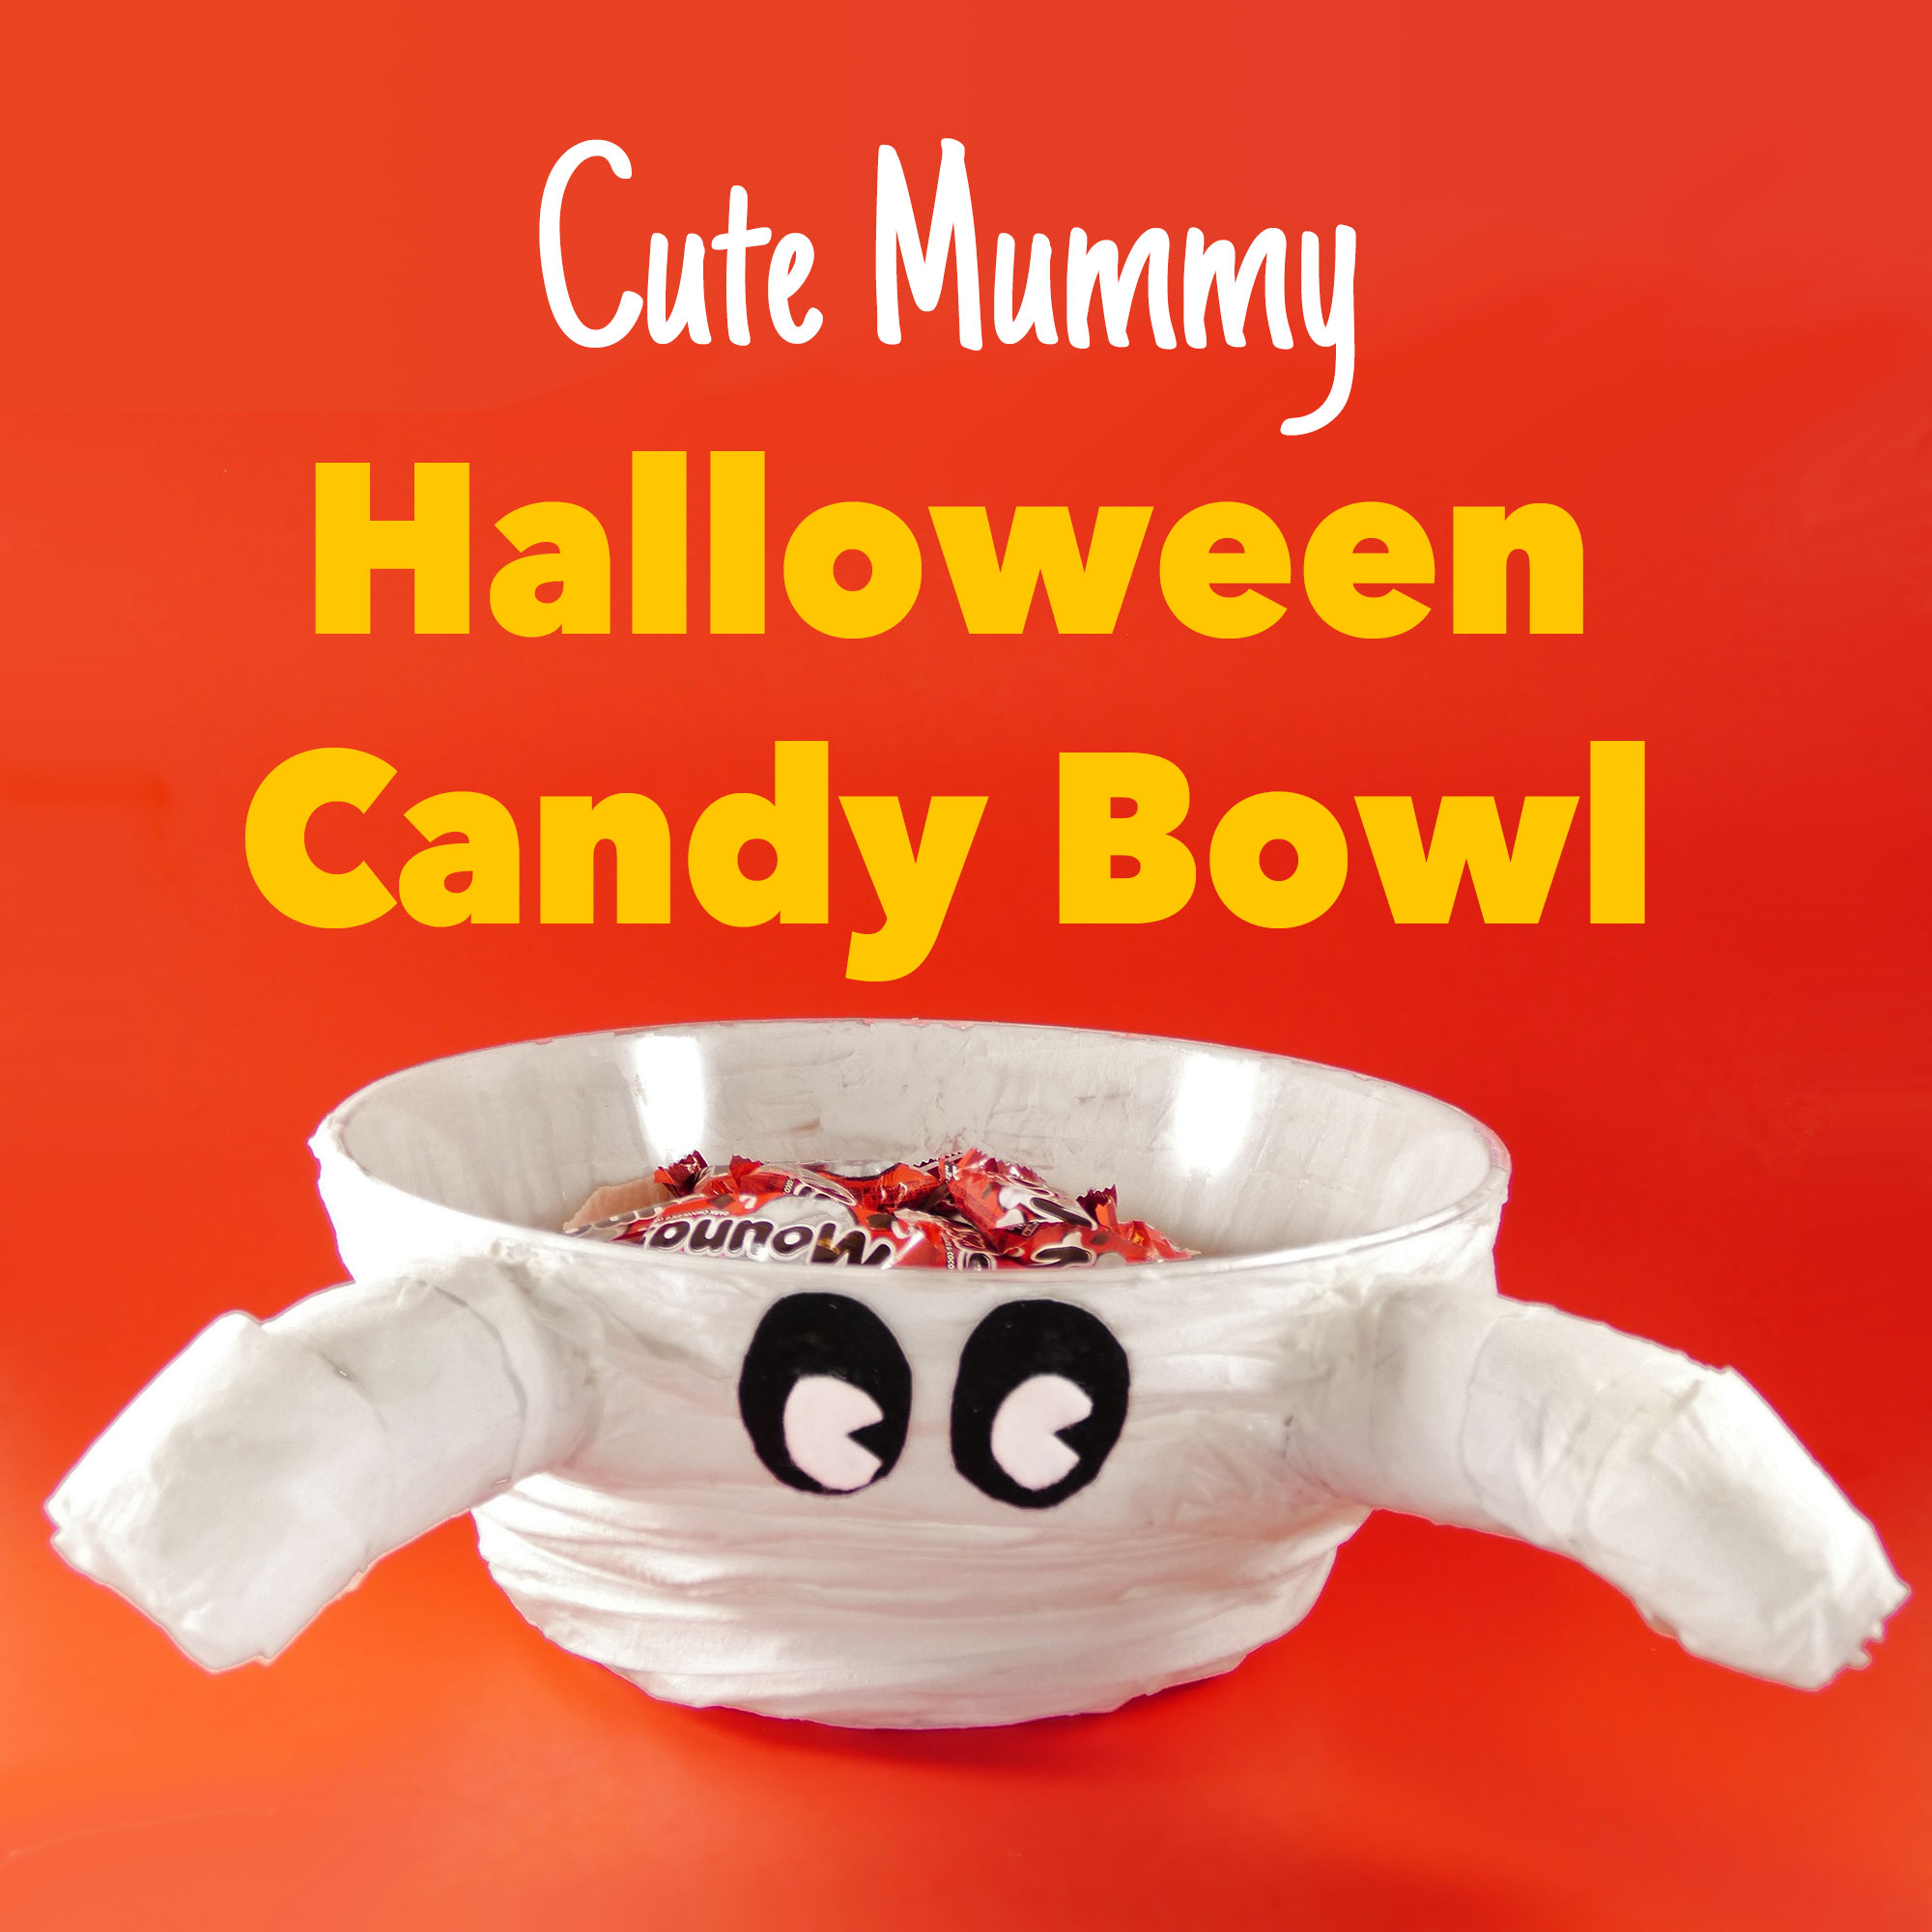 Make a Cute Mummy Halloween Candy Bowl at the Last Minute | JenuineMom.com